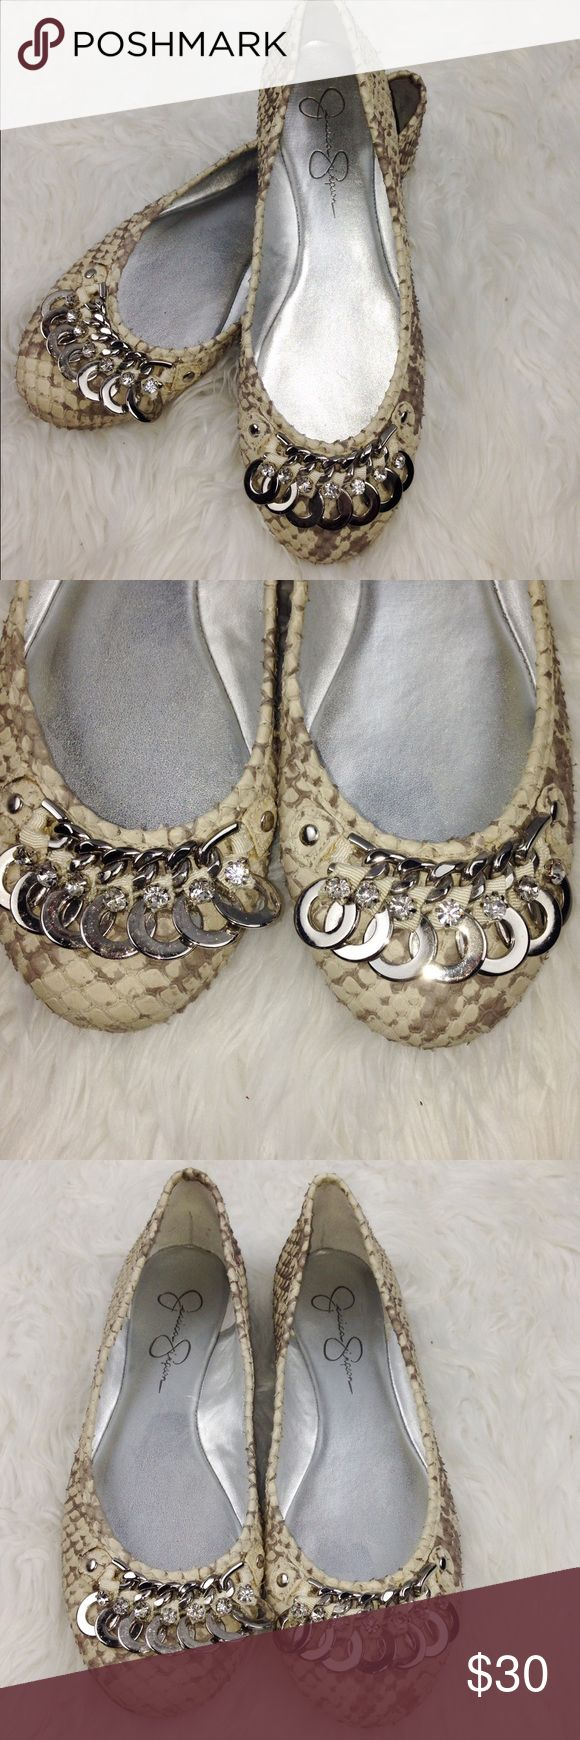 "SALE Jessica Simpson ""Early"" Embellished Flats Adorable Jessica Simpson ""Early"" Embellished Tan Snakeskin Flats Jessica Simpson Shoes Flats & Loafers"